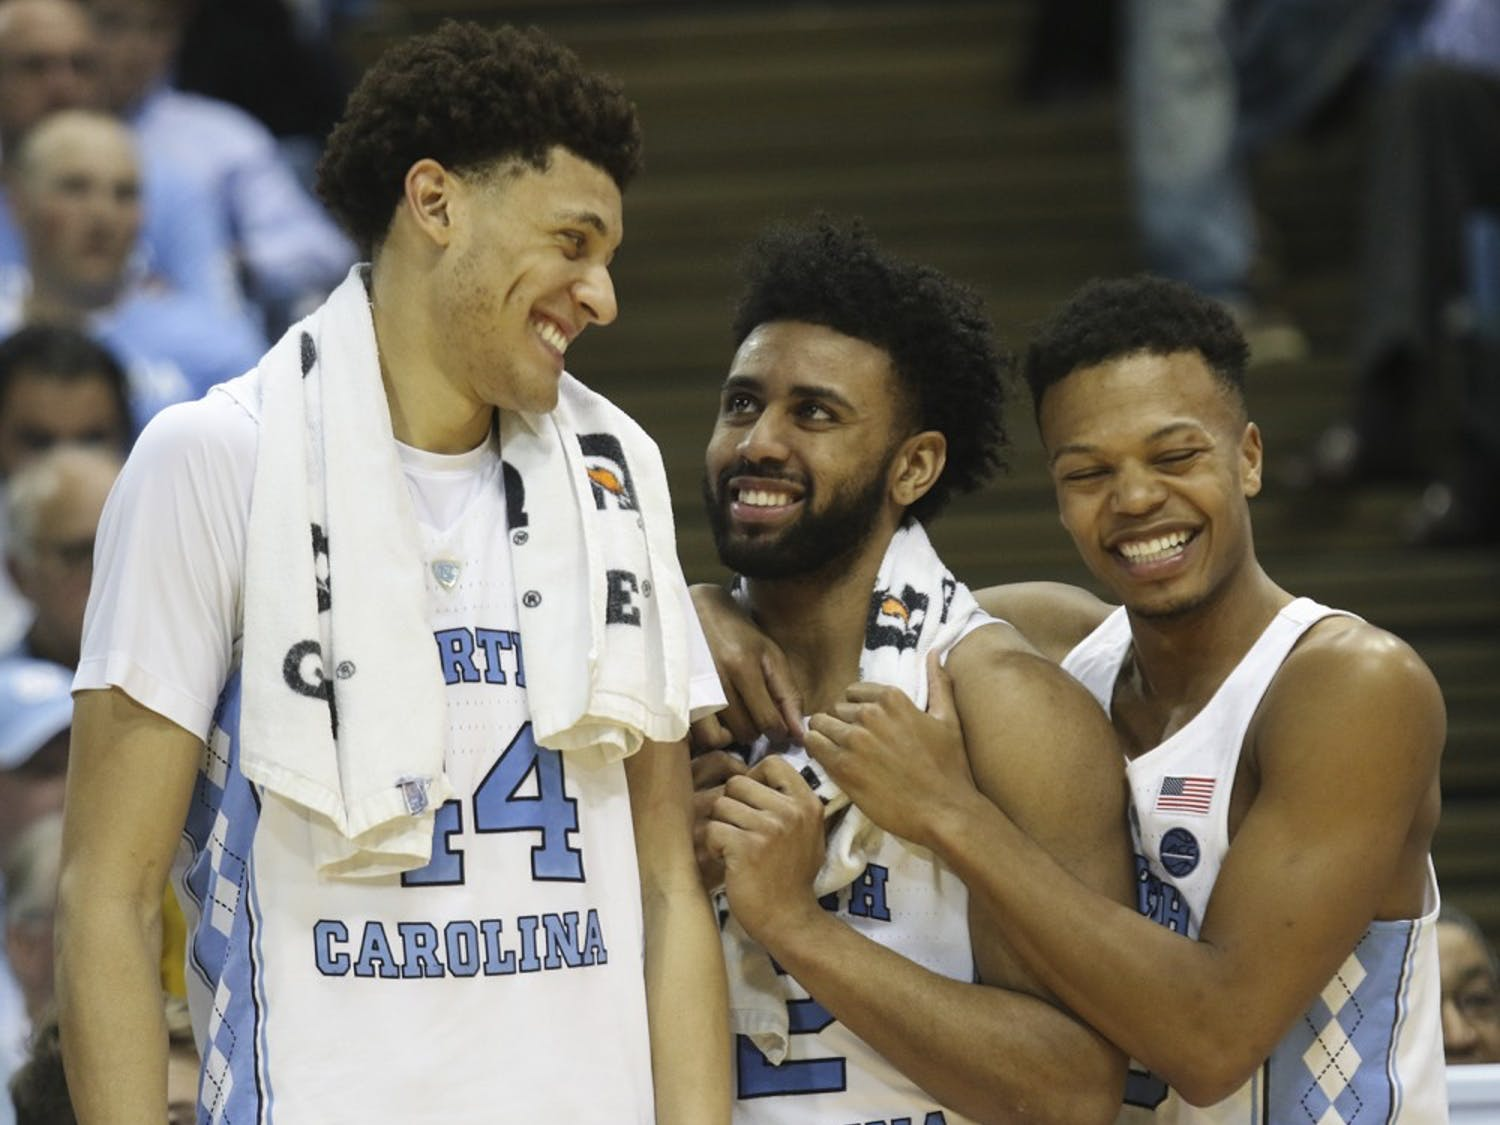 North Carolina teammates Justin Jackson (44), Joel Berry (2) and Nate Britt (0) share a laugh after defeating Duke in the Smith Center on Saturday.